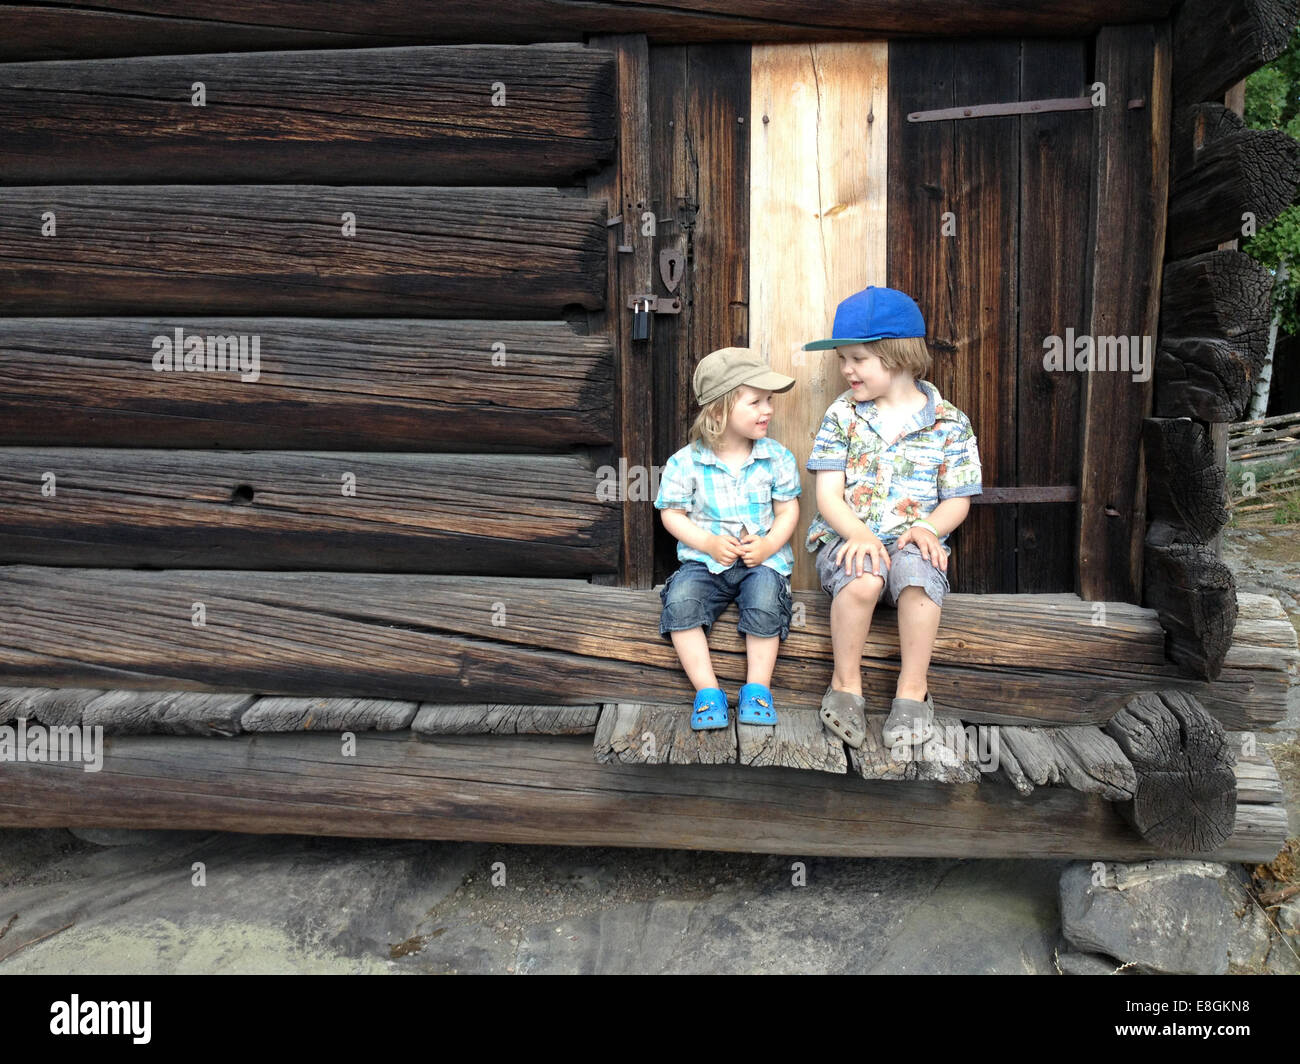 Two boys sitting on porch steps talking - Stock Image